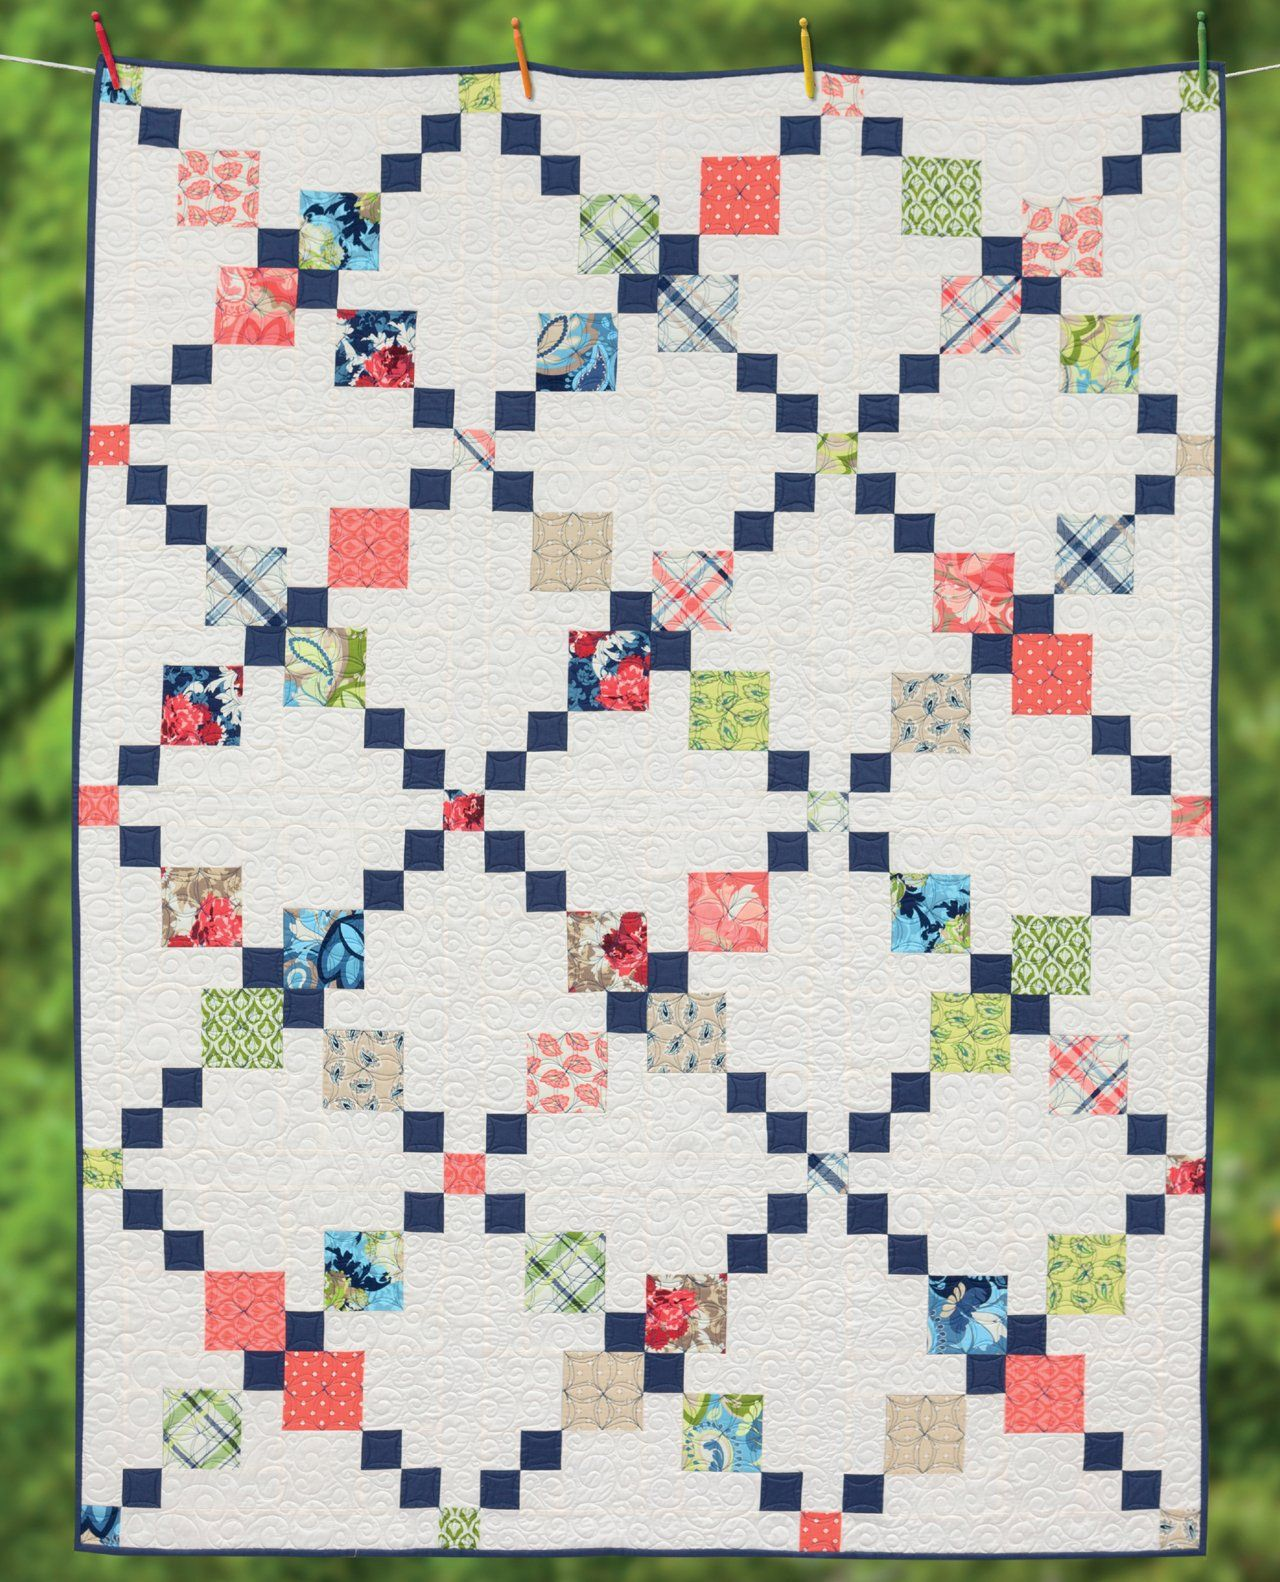 Irish Chain Quilts: Contemporary Twists on a Classic Design ... : irish chain baby quilt pattern - Adamdwight.com